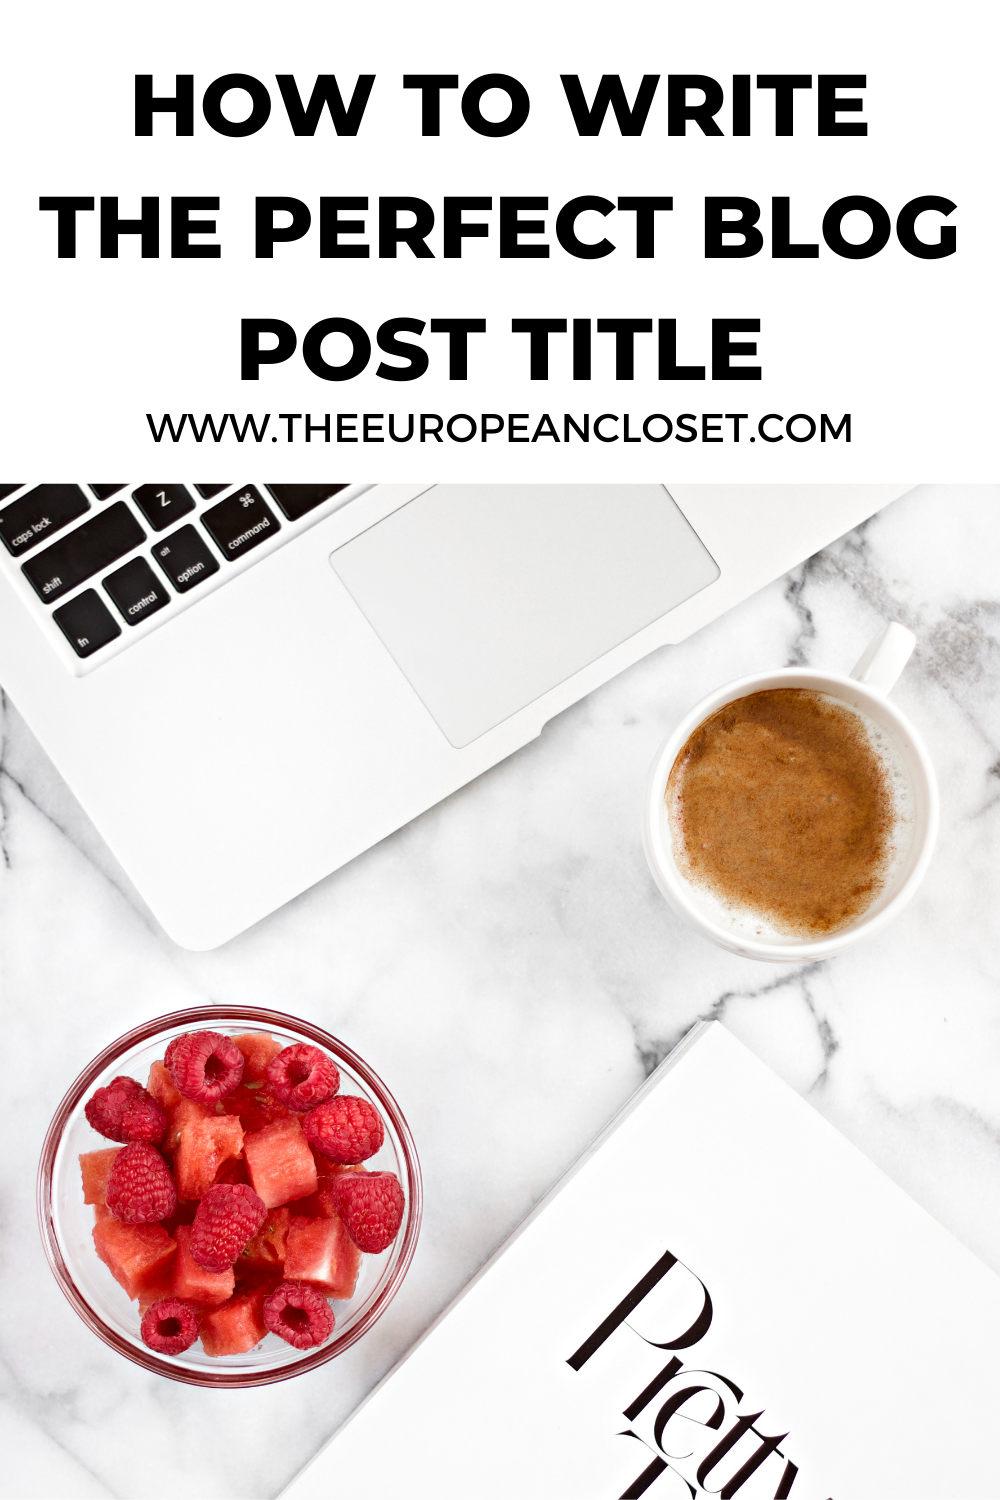 Creating a post is hard. But you know what's harder? To write a good blog post title. Today I'll show you how to write a good title in 3 steps